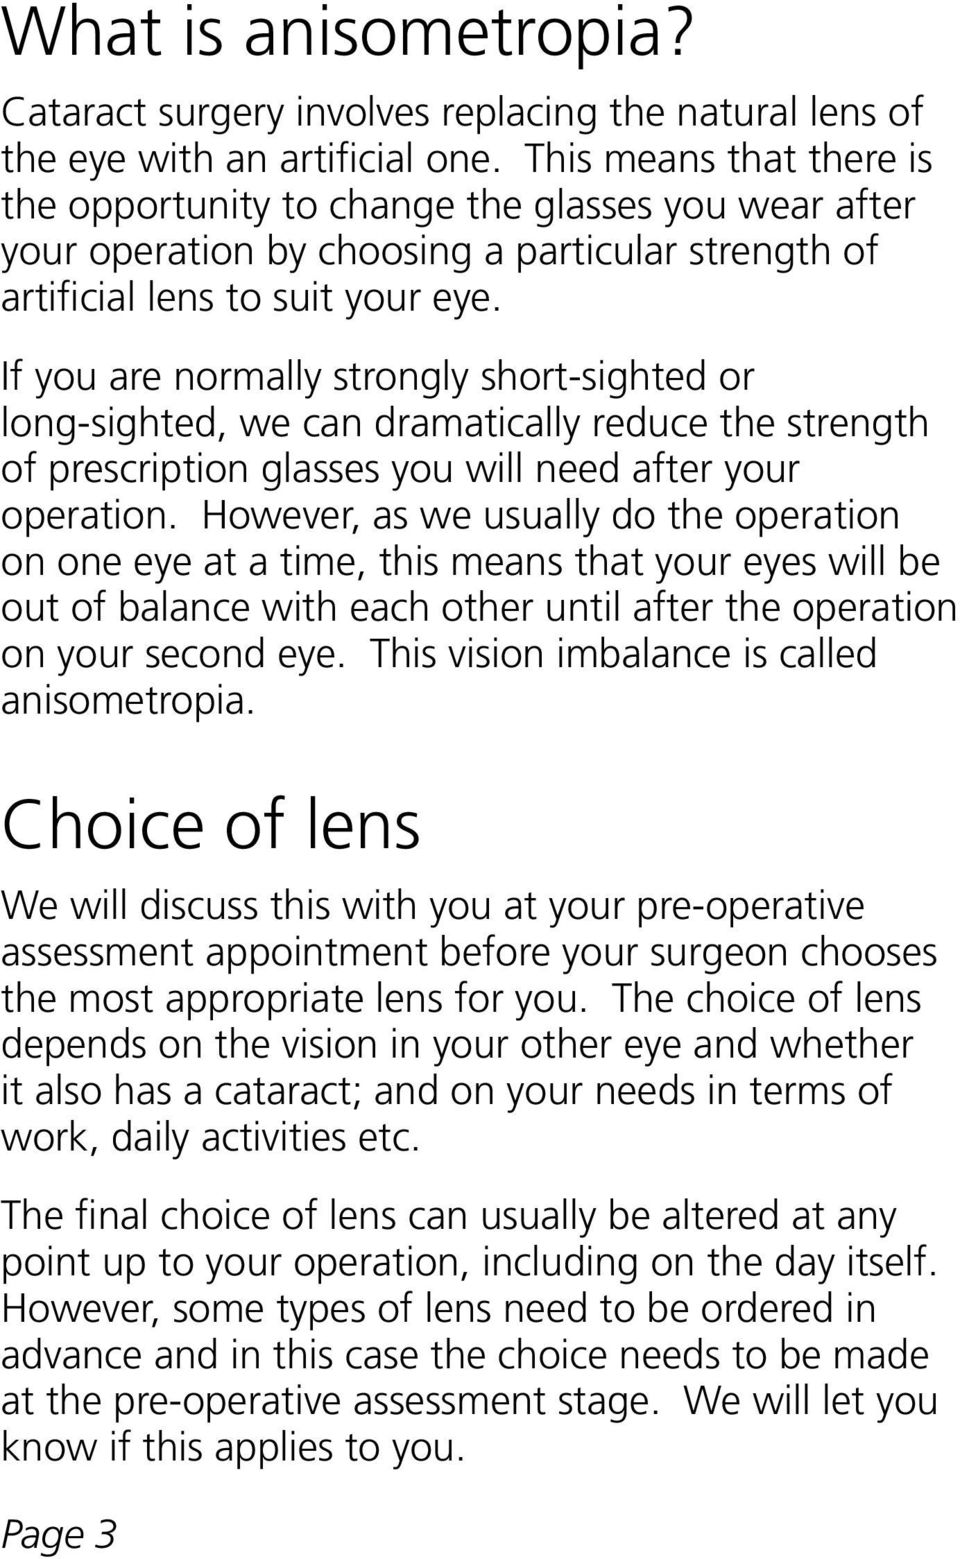 If you are normally strongly short-sighted or long-sighted, we can dramatically reduce the strength of prescription glasses you will need after your operation.